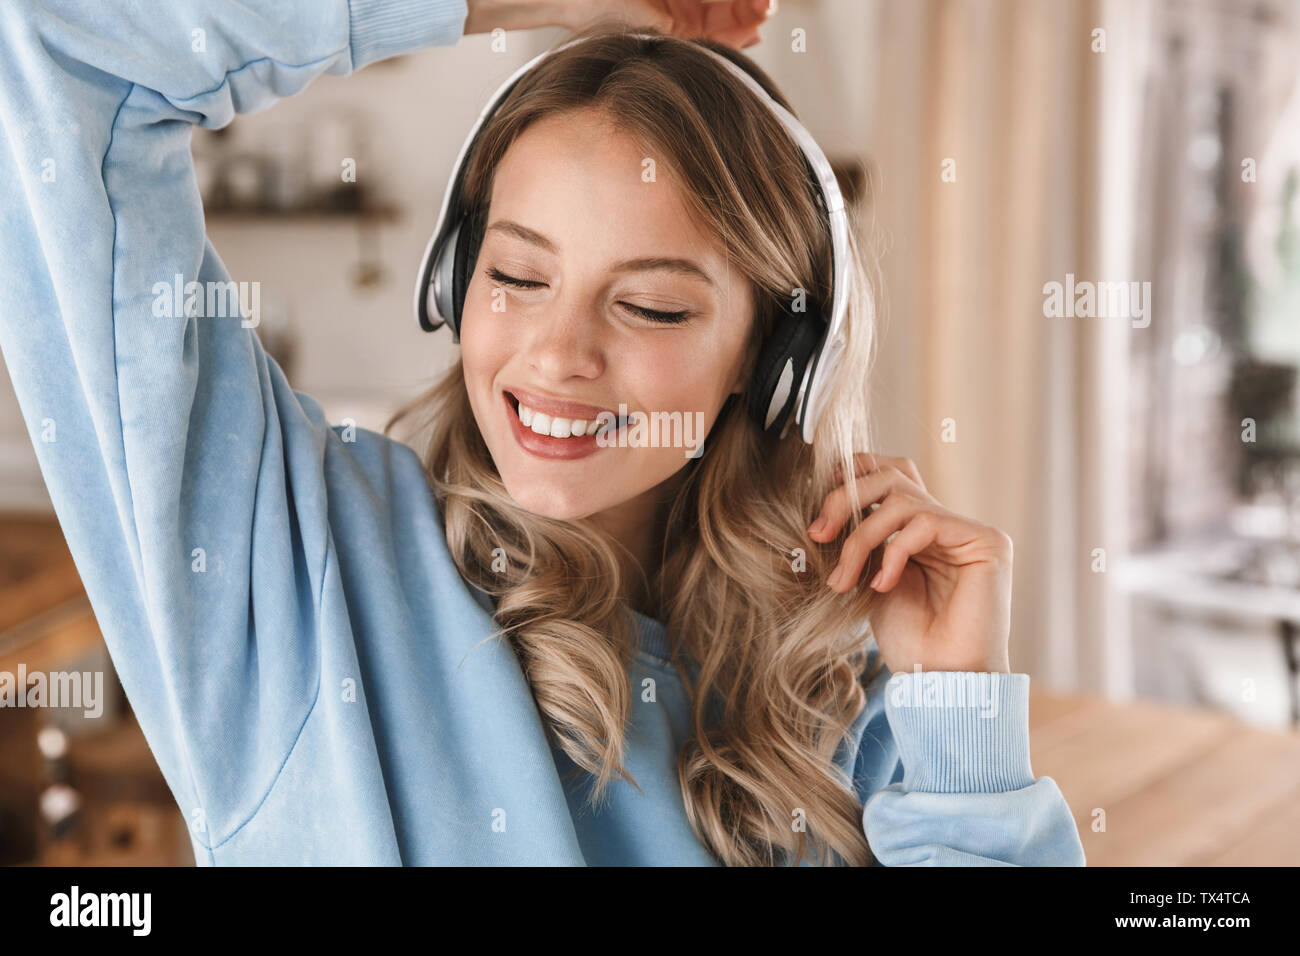 Portrait of pretty blond girl 20s wearing headphones smiling and rejoicing while listening to music at home Stock Photo